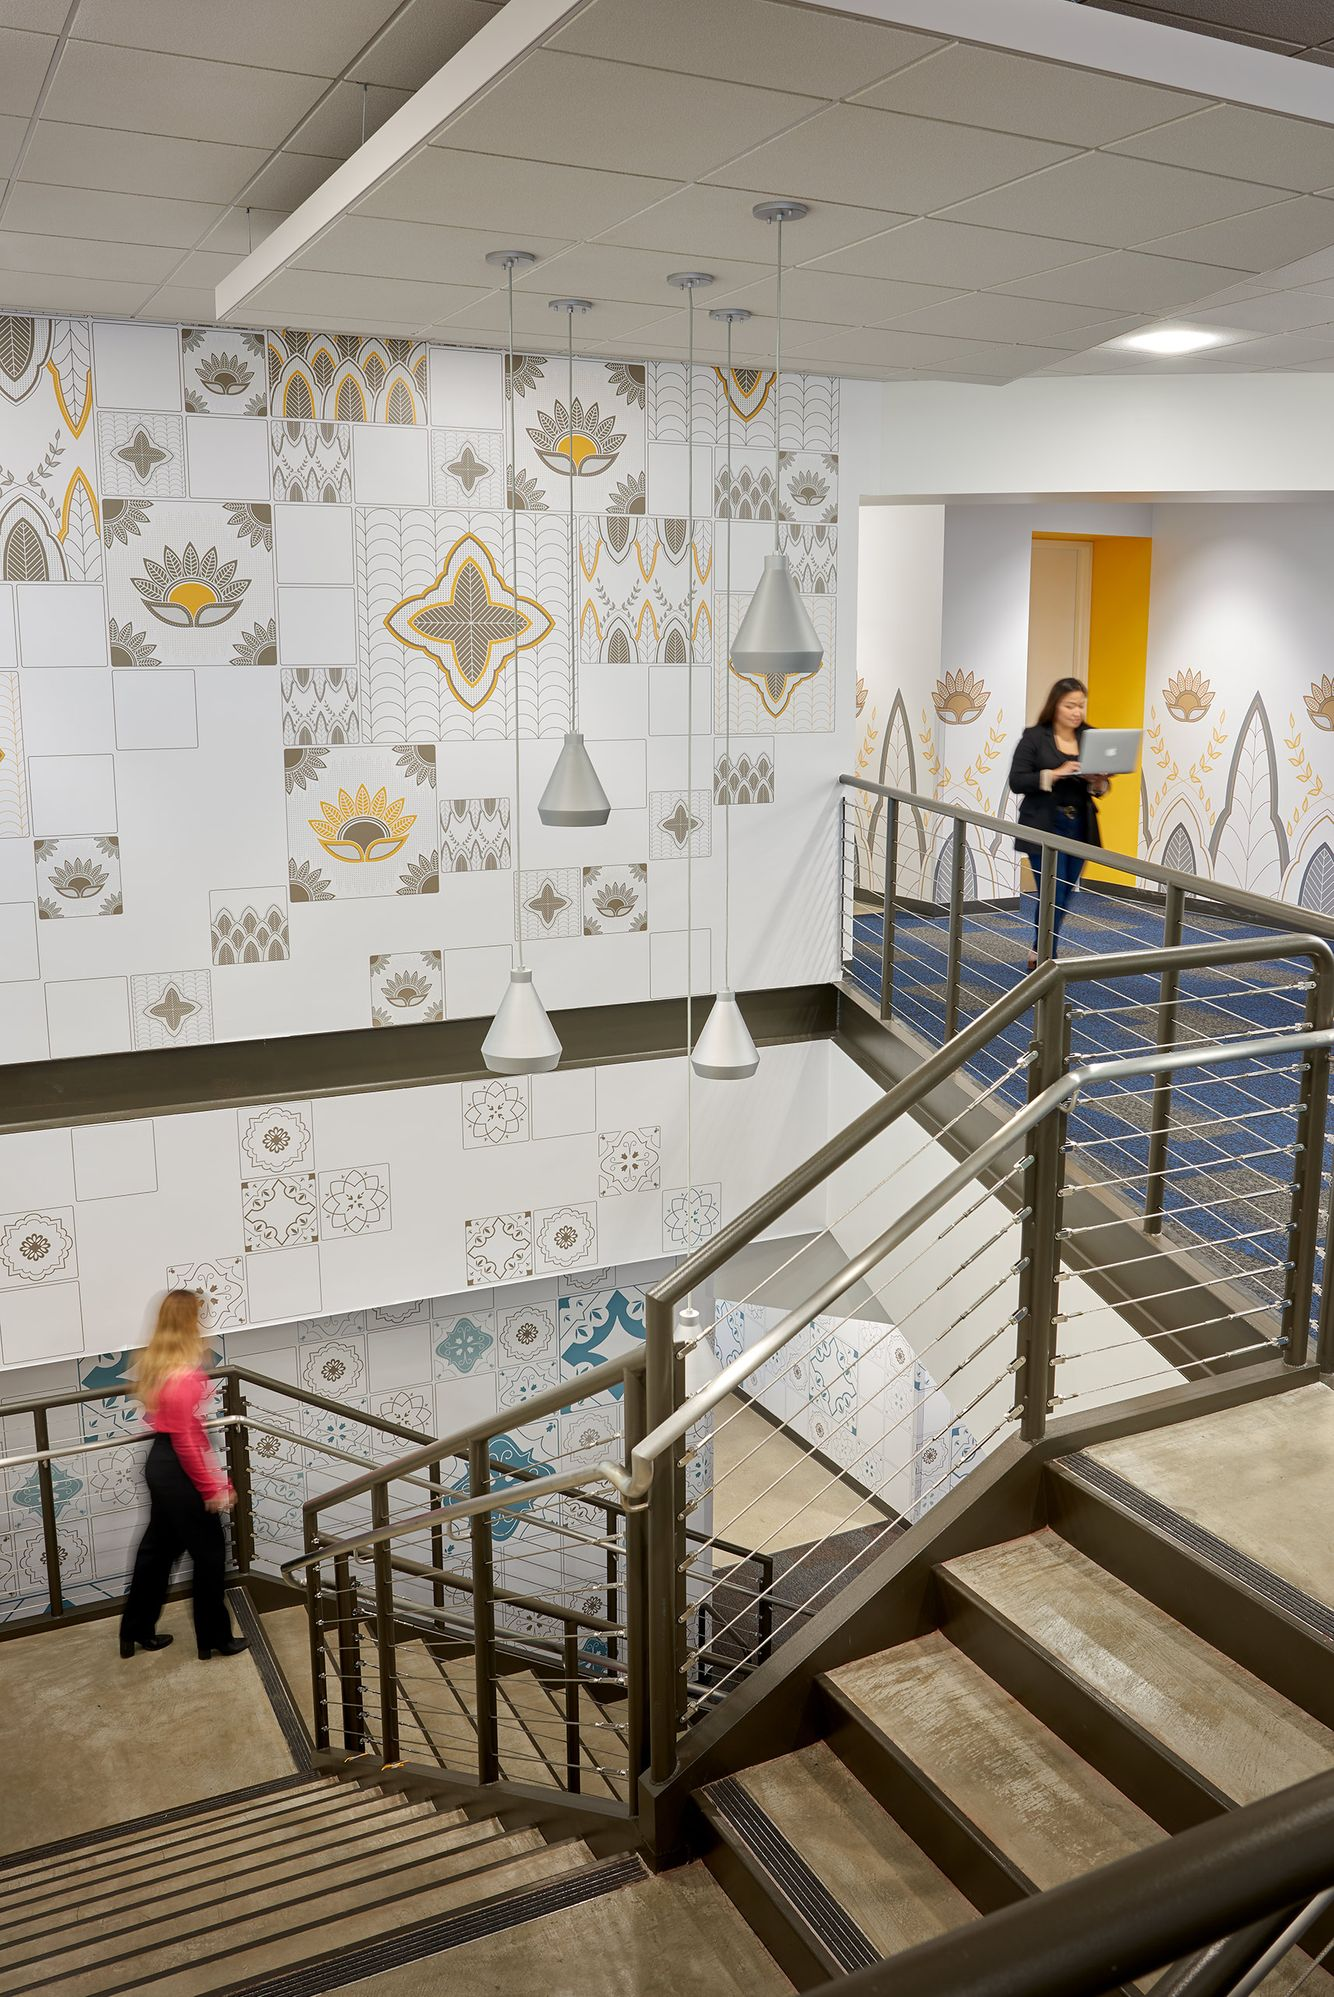 stairway with graphics and working women